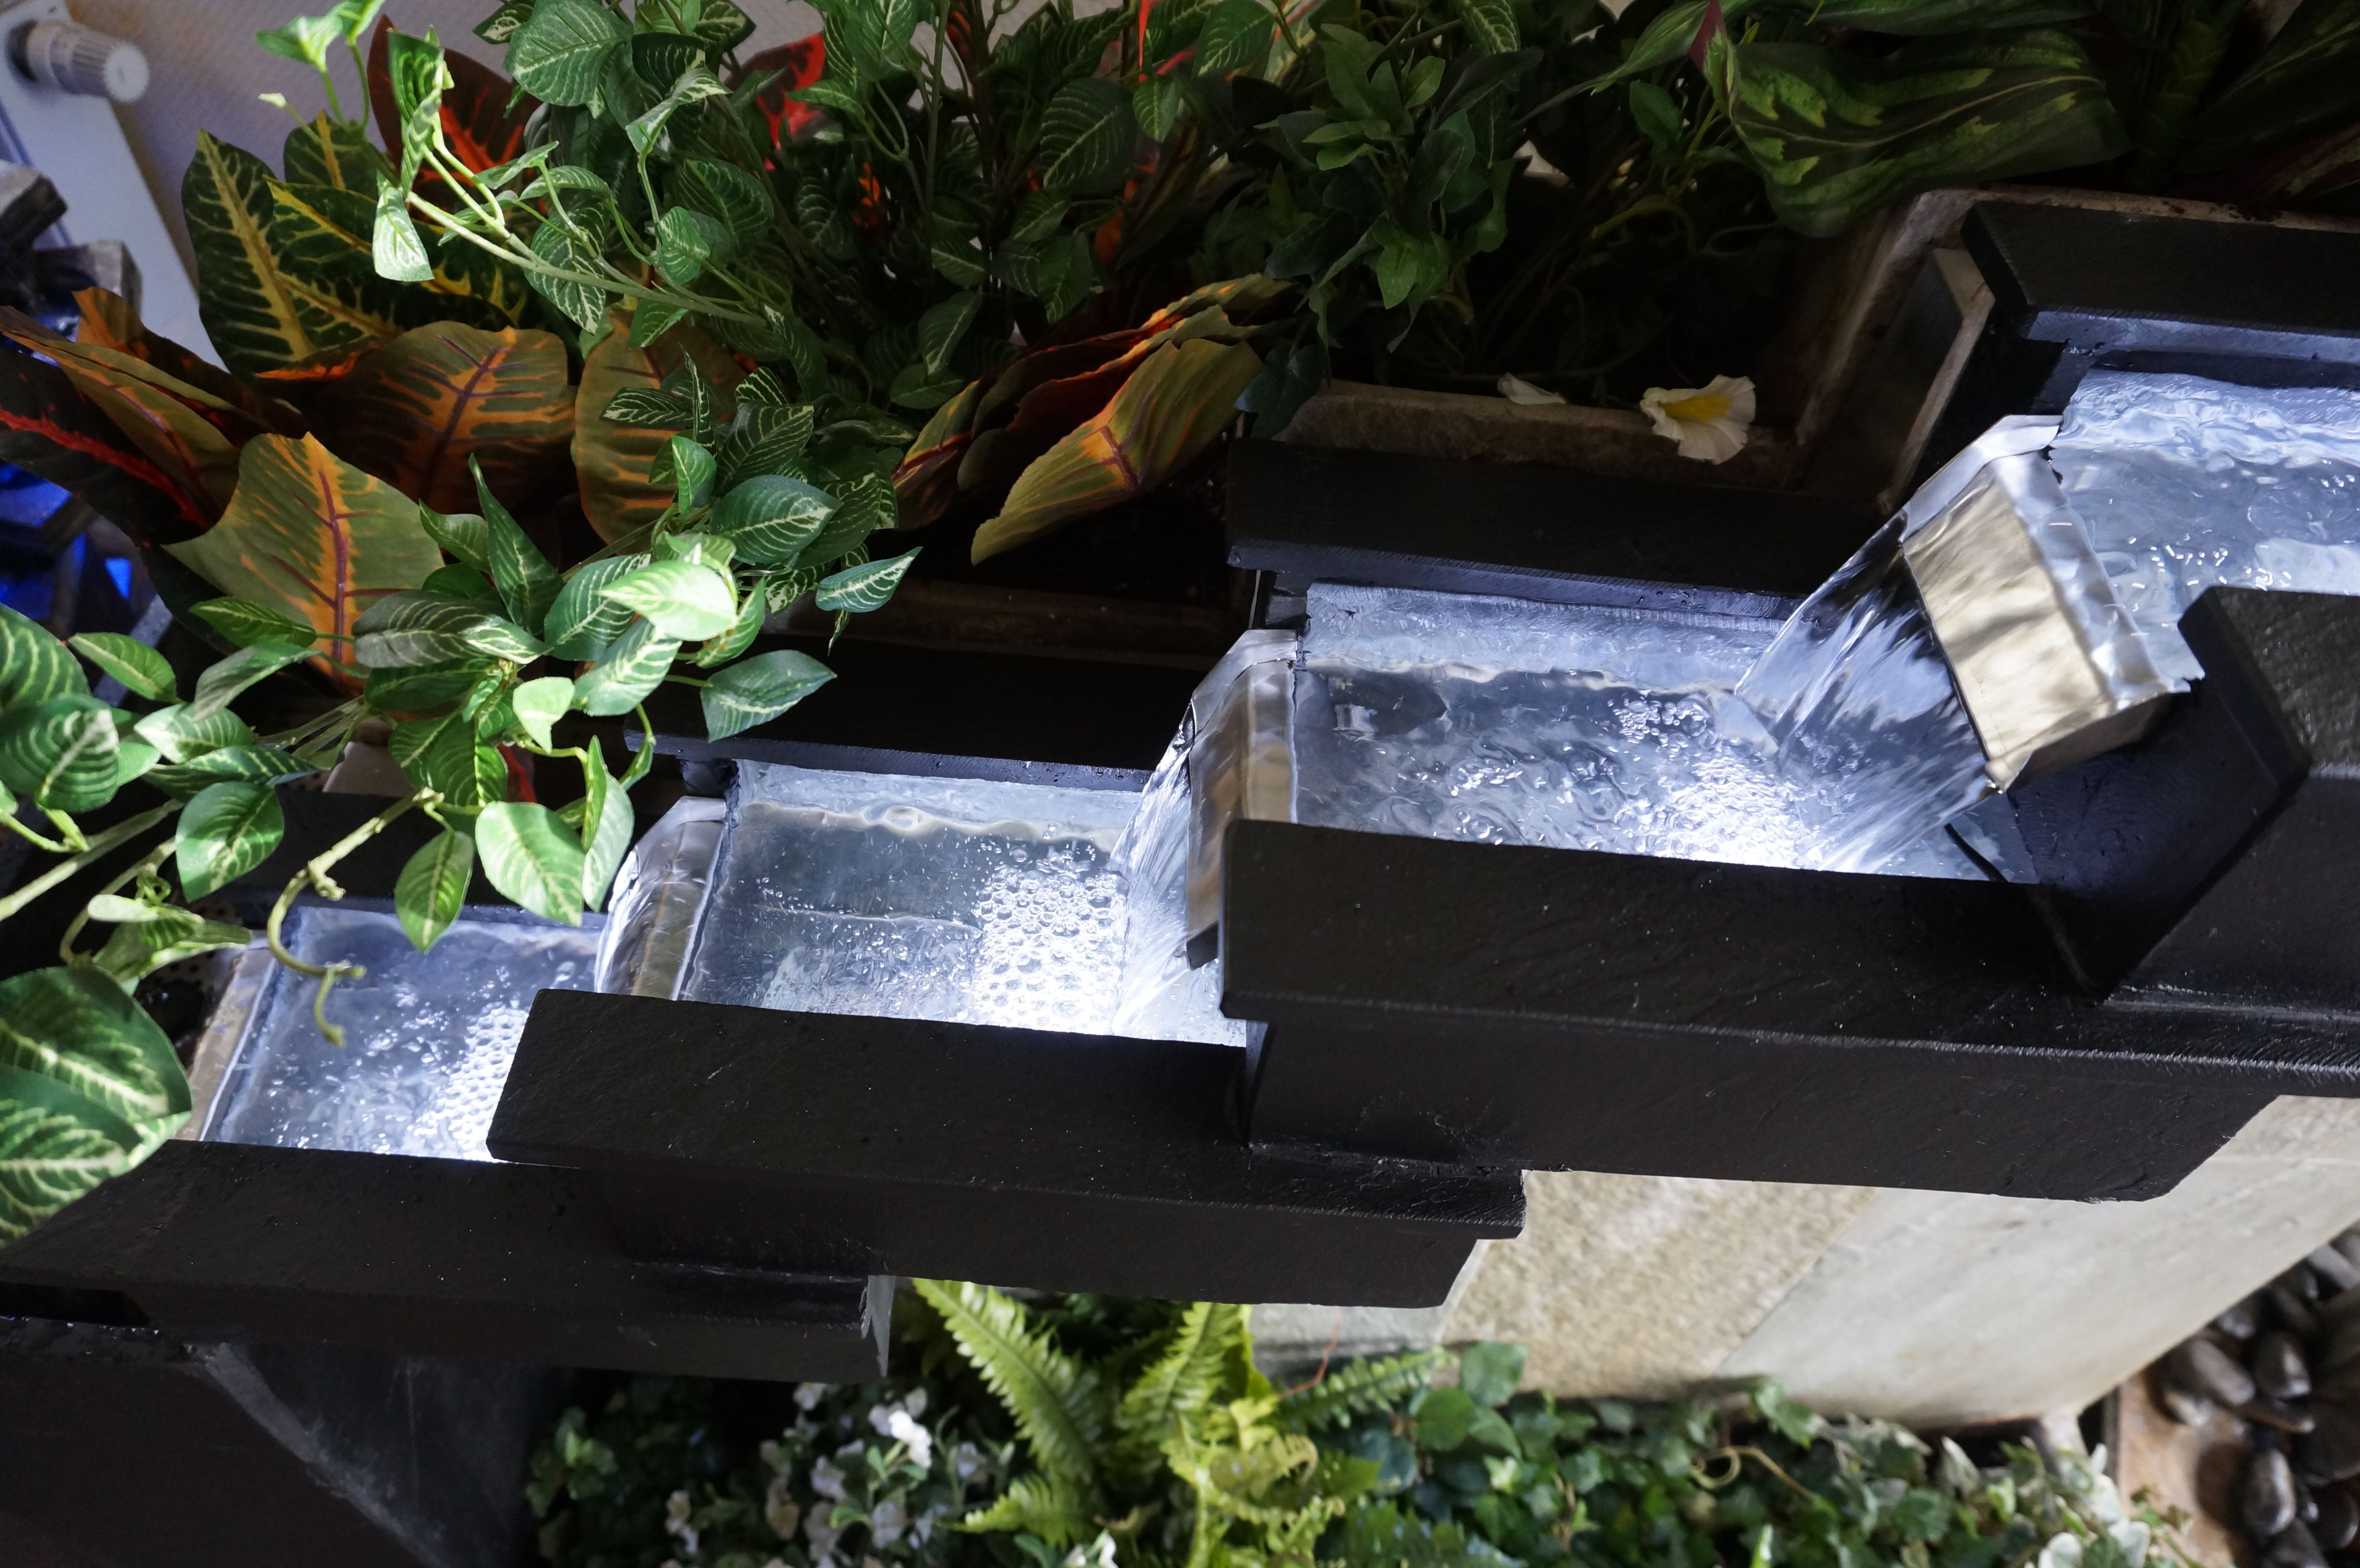 """Amazing waterfall from Cactose's """"Babylone"""" fountain. This fountain is made of natural stone and can contain many plants. A real garden for the house or the terrace ! www.cactose.fr"""